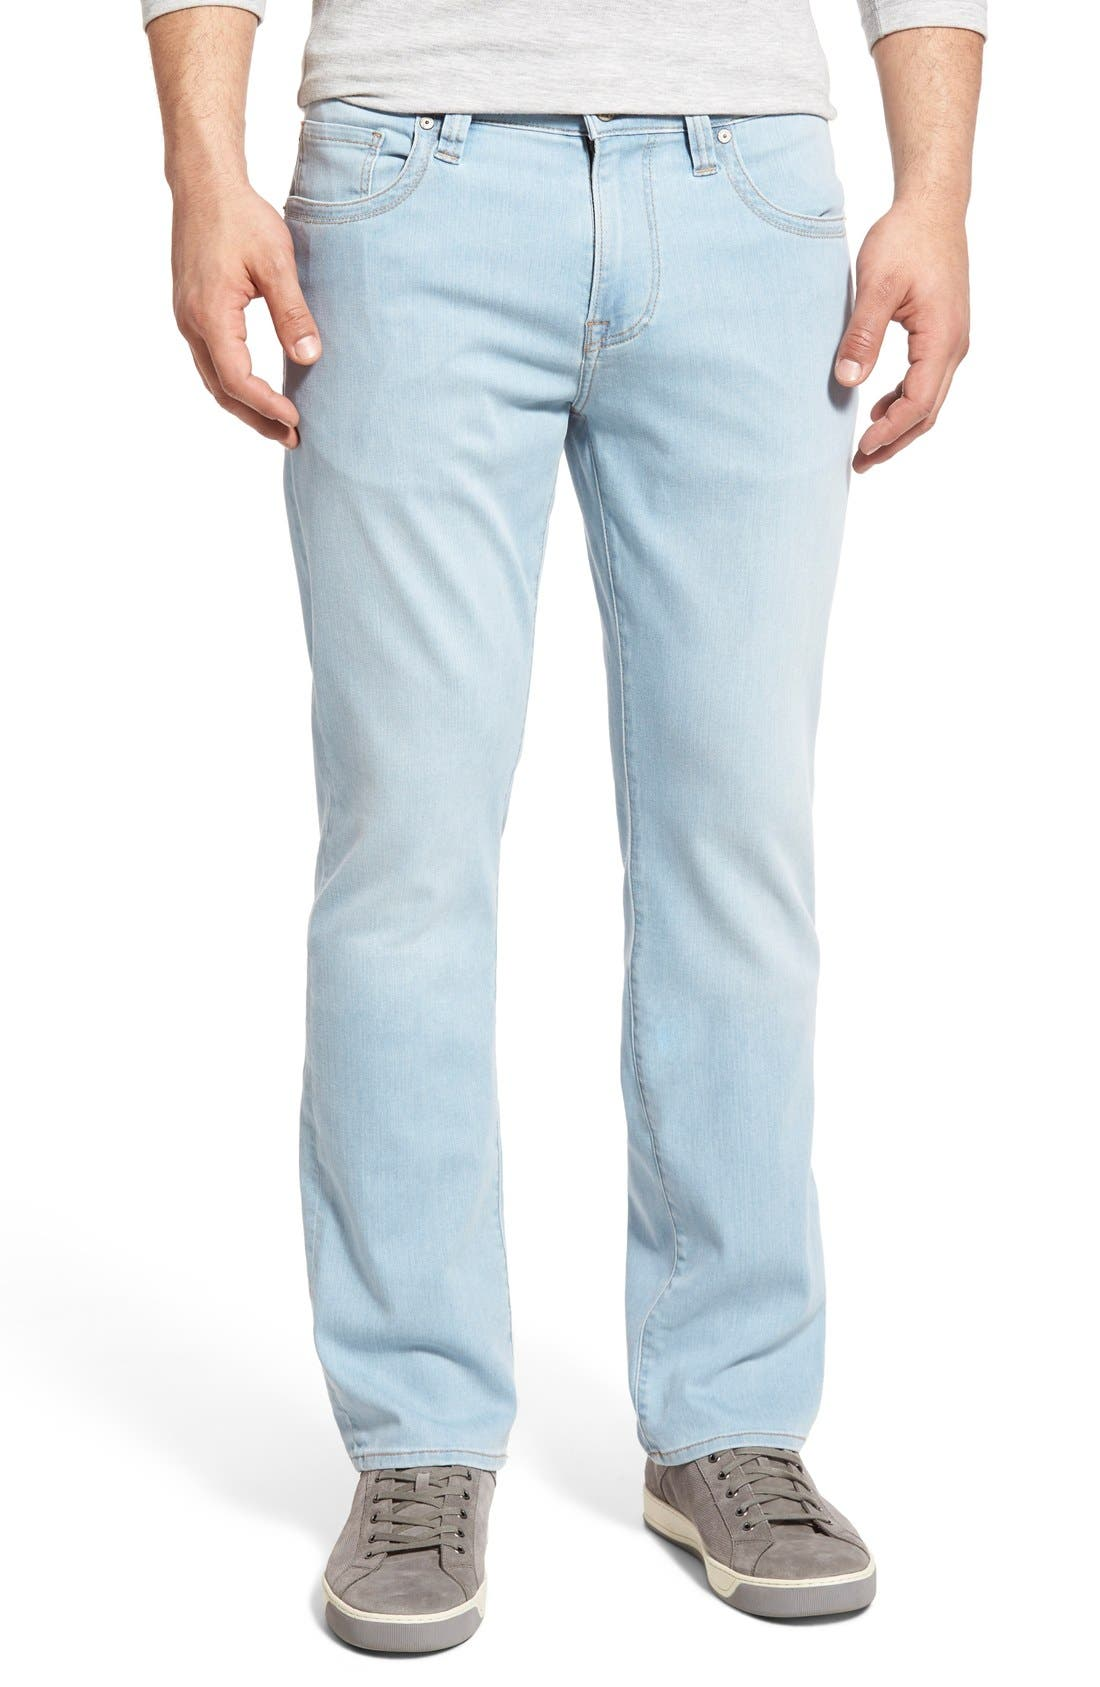 34 HERITAGE 'Charisma' Relaxed Fit Jeans